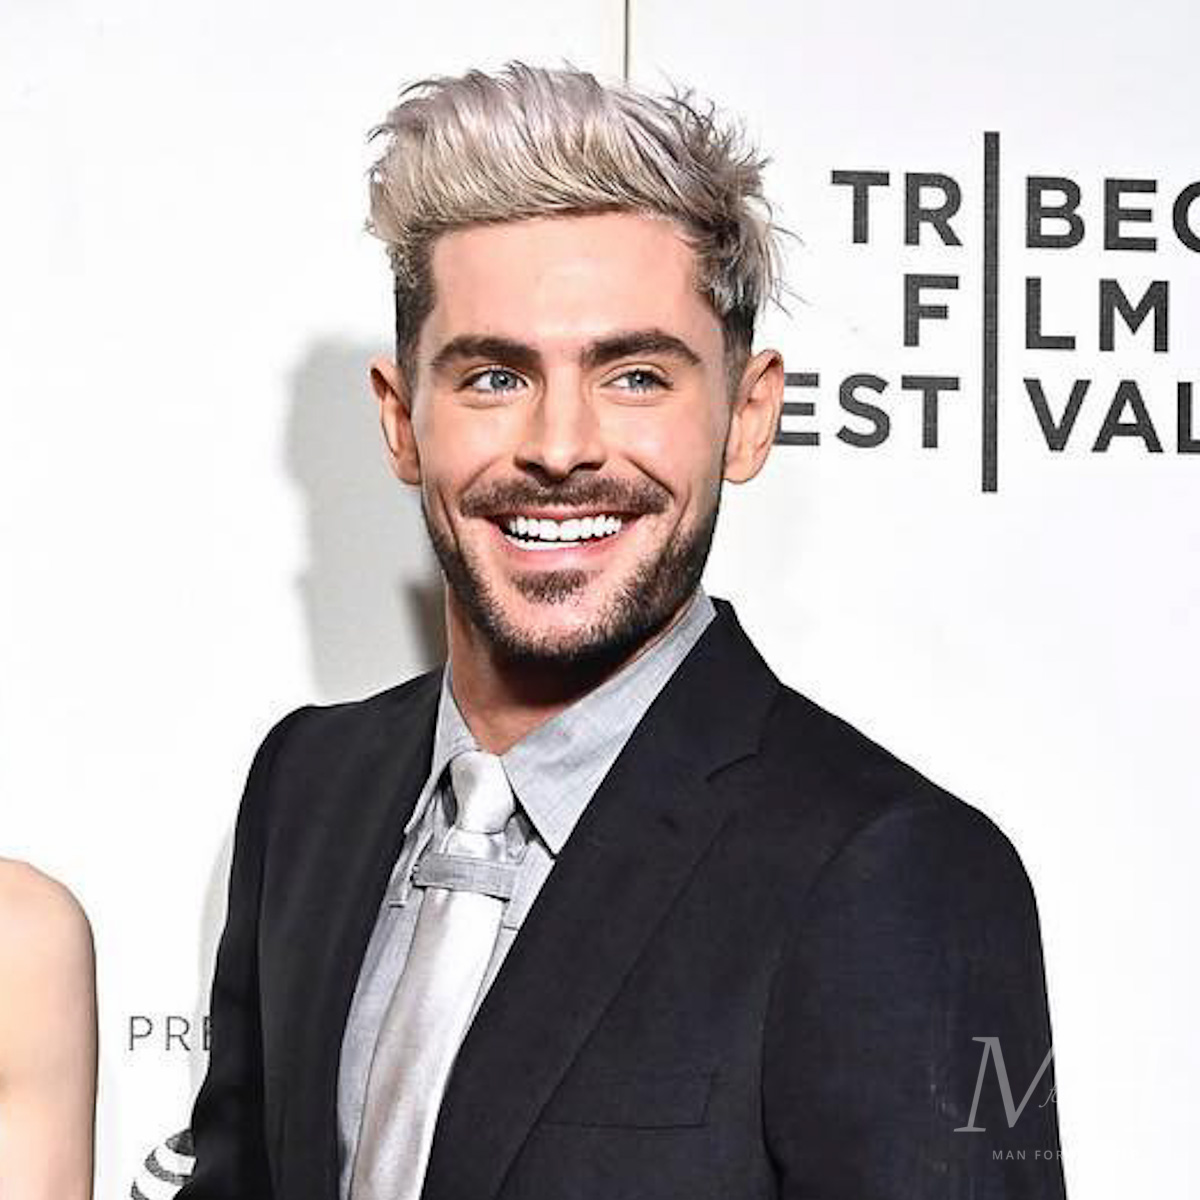 Zac Efron Bleached Blonde Long Quiff Hairstyle Man For Himself